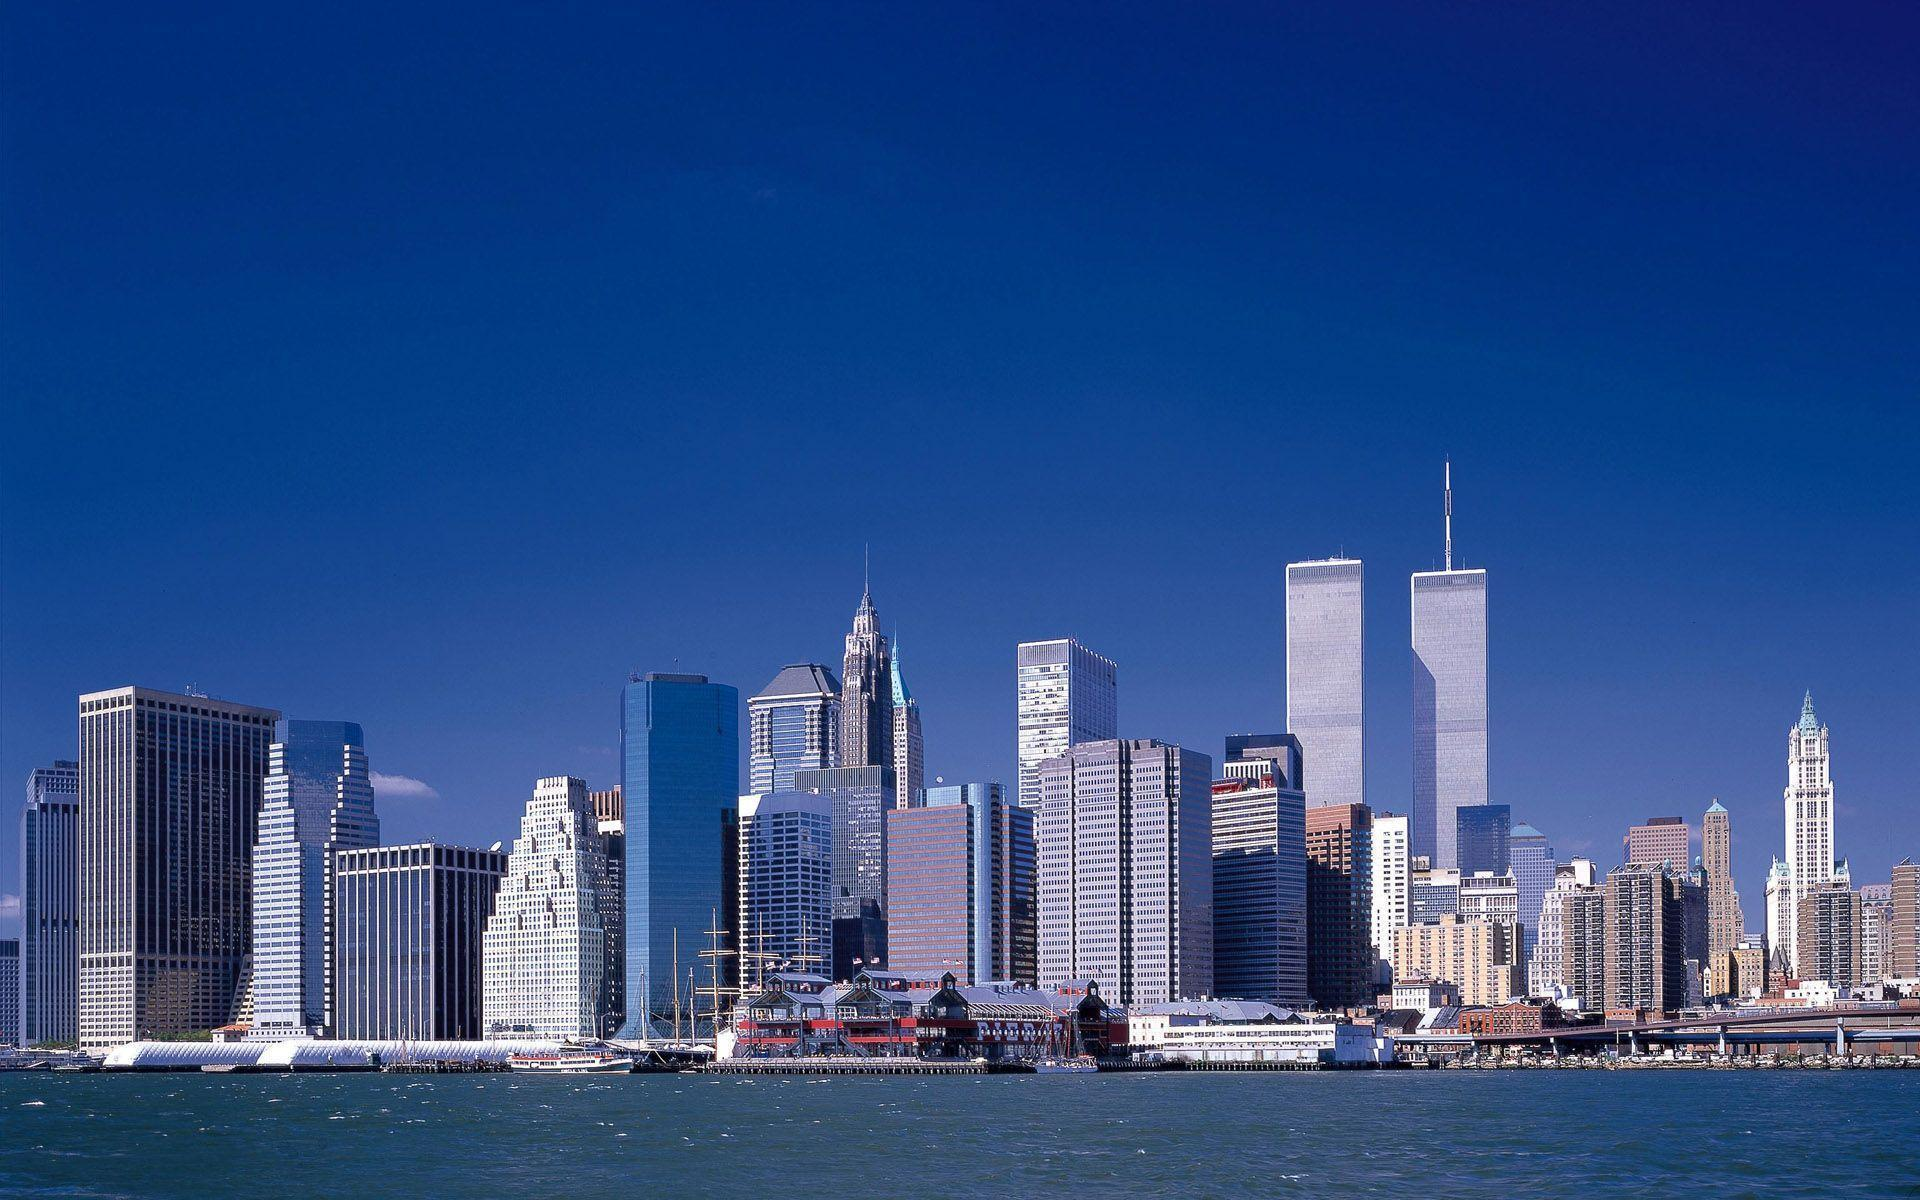 City before September 11 / New York / USA wallpapers and image